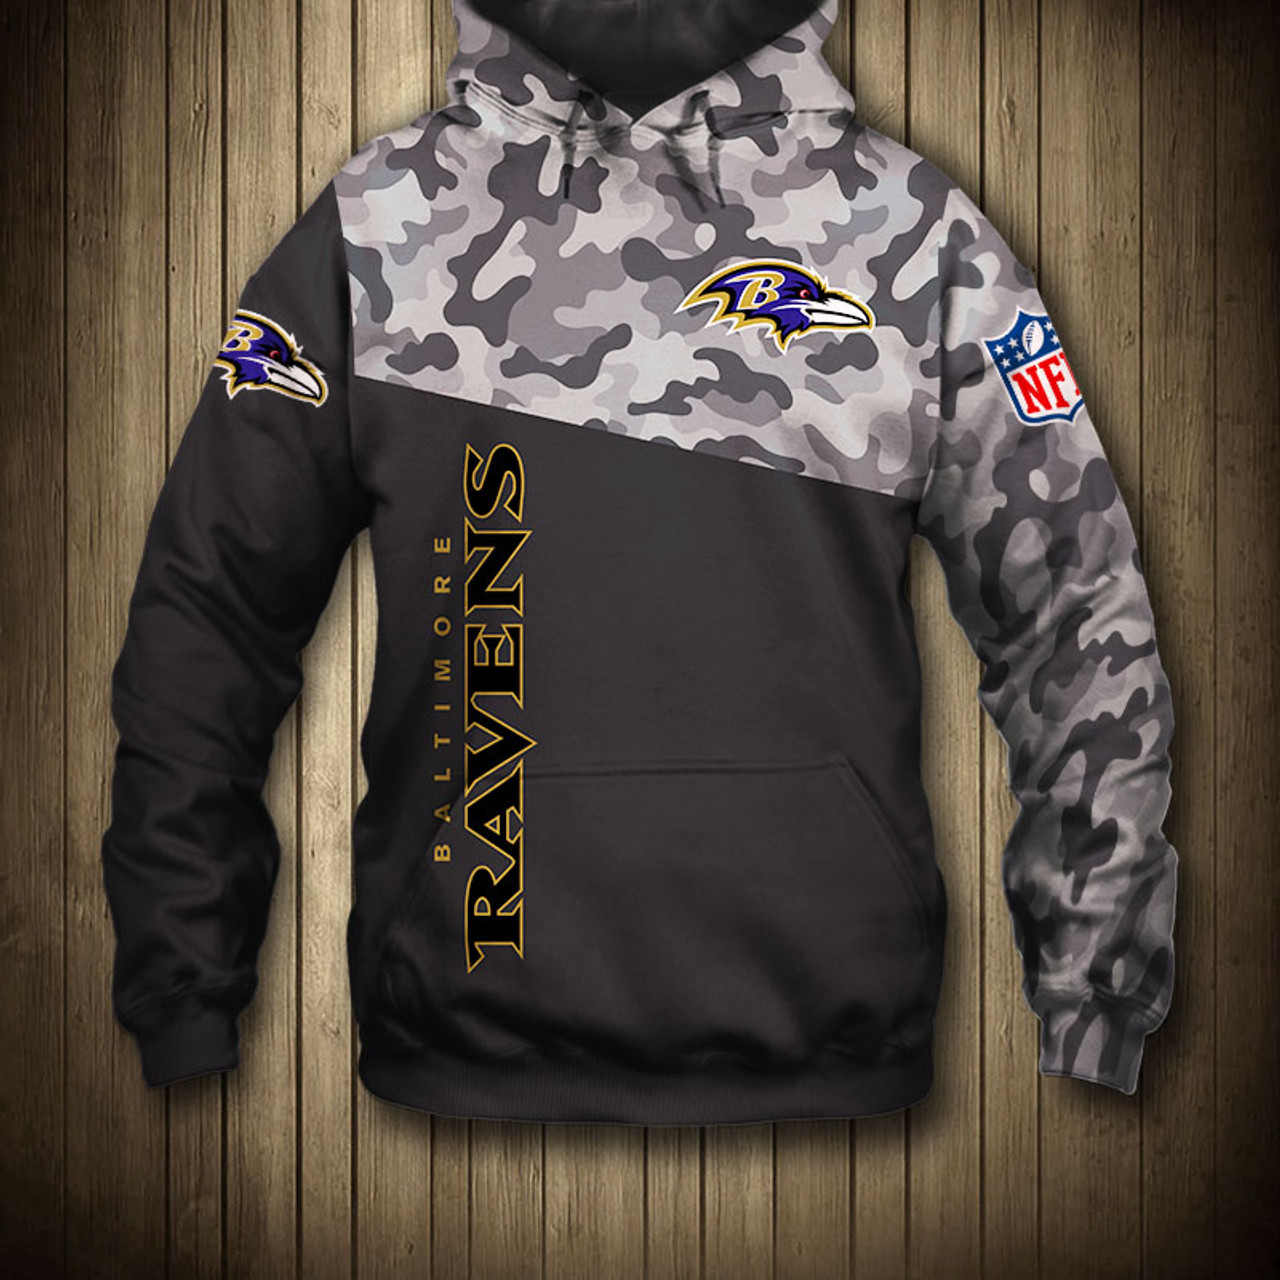 **(OFFICIAL-N.F.L.BALTIMORE-RAVENS-CAMO.DESIGN-PULLOVER-HOODIES/3D-CUSTOM-RAVENS-LOGOS & OFFICIAL-RAVENS-TEAM-COLORS/NICE-3D-DETAILED-GRAPHIC-PRINTED-DOUBLE-SIDED/ALL-OVER-ENTIRE-HOODIE-PRINTED-DESIGN/WARM-PREMIUM-N.F.L.RAVENS-PULLOVER-HOODIES)**